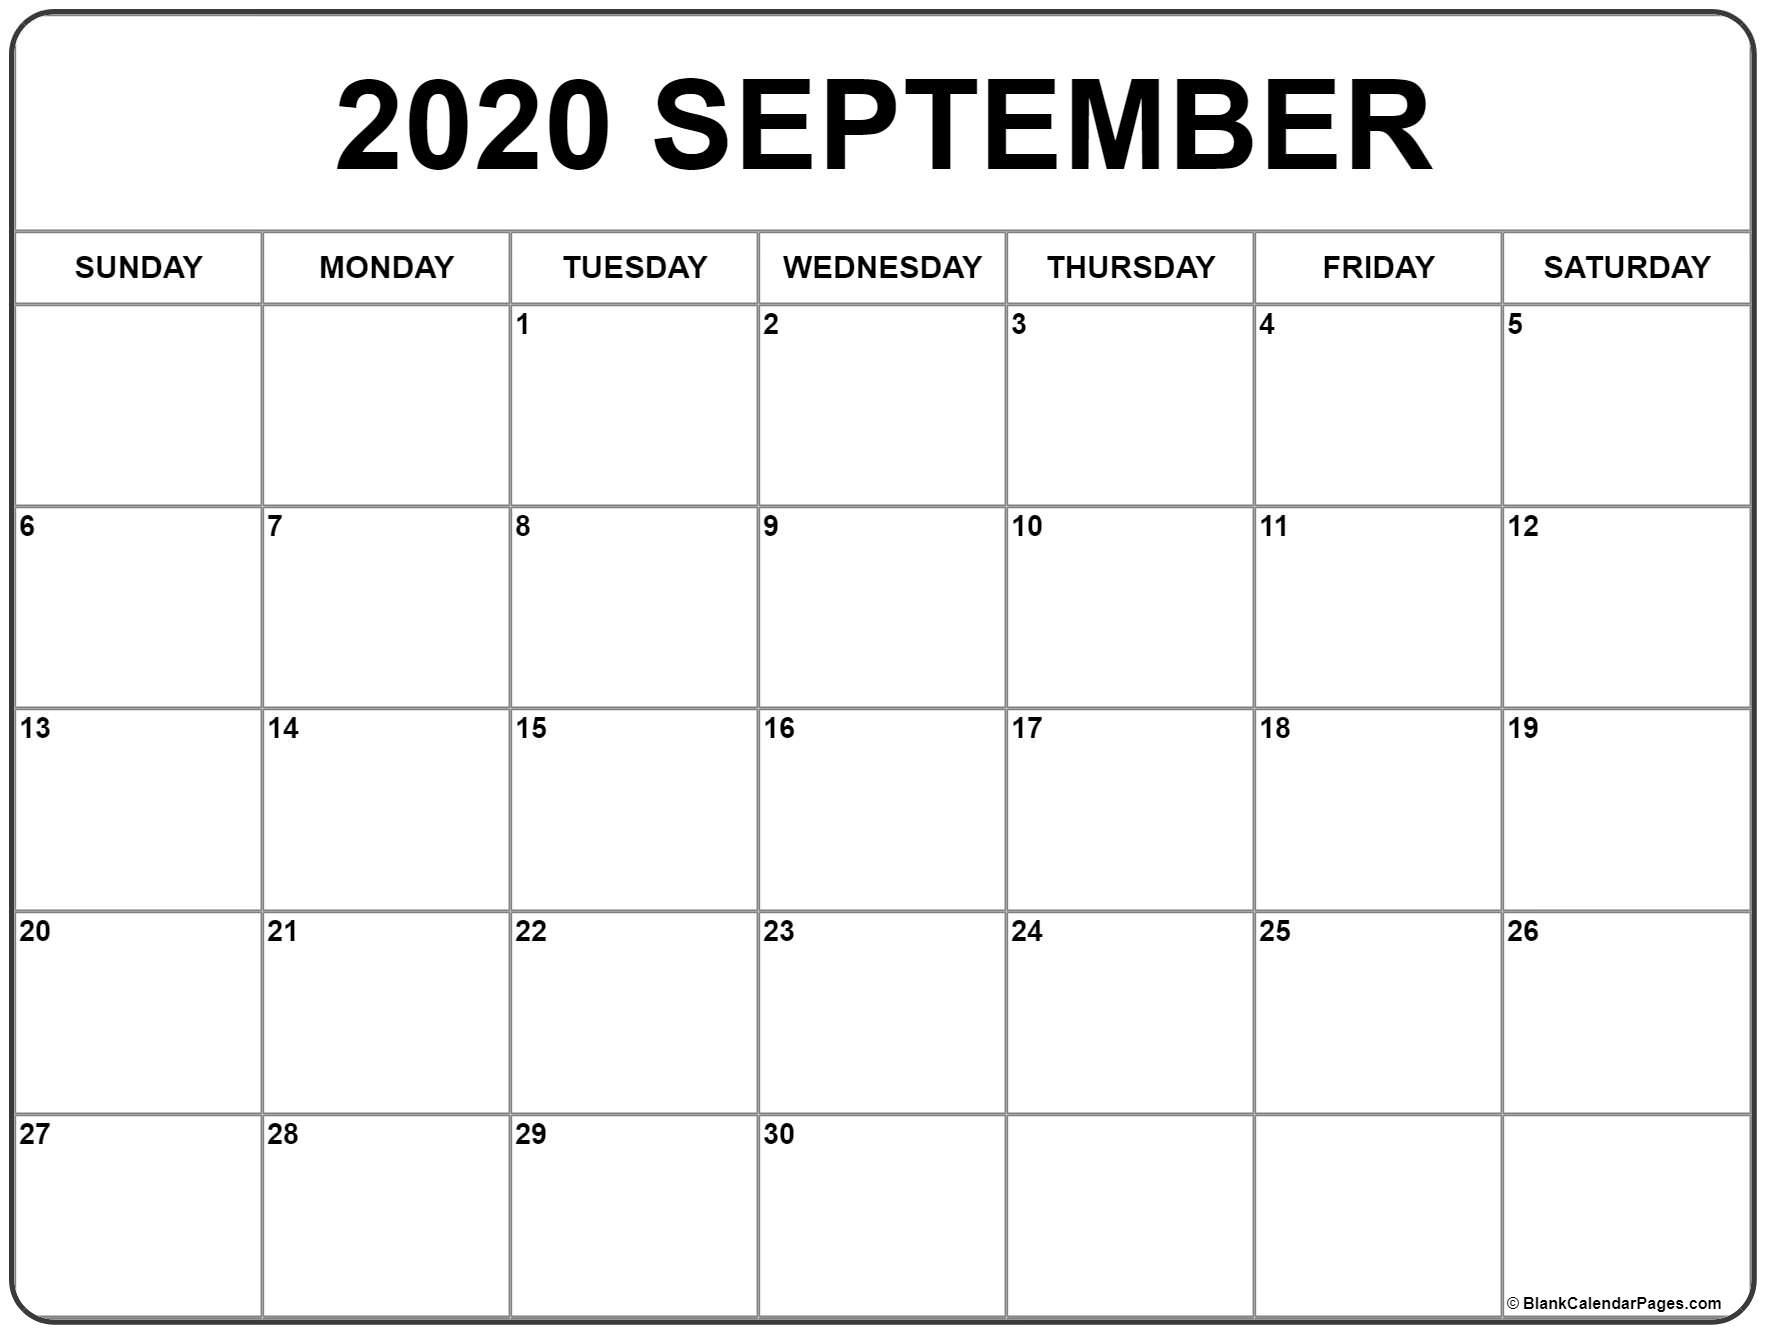 September 2020 Calendar | Free Printable Monthly Calendars_A Blank Calendar For September 2020